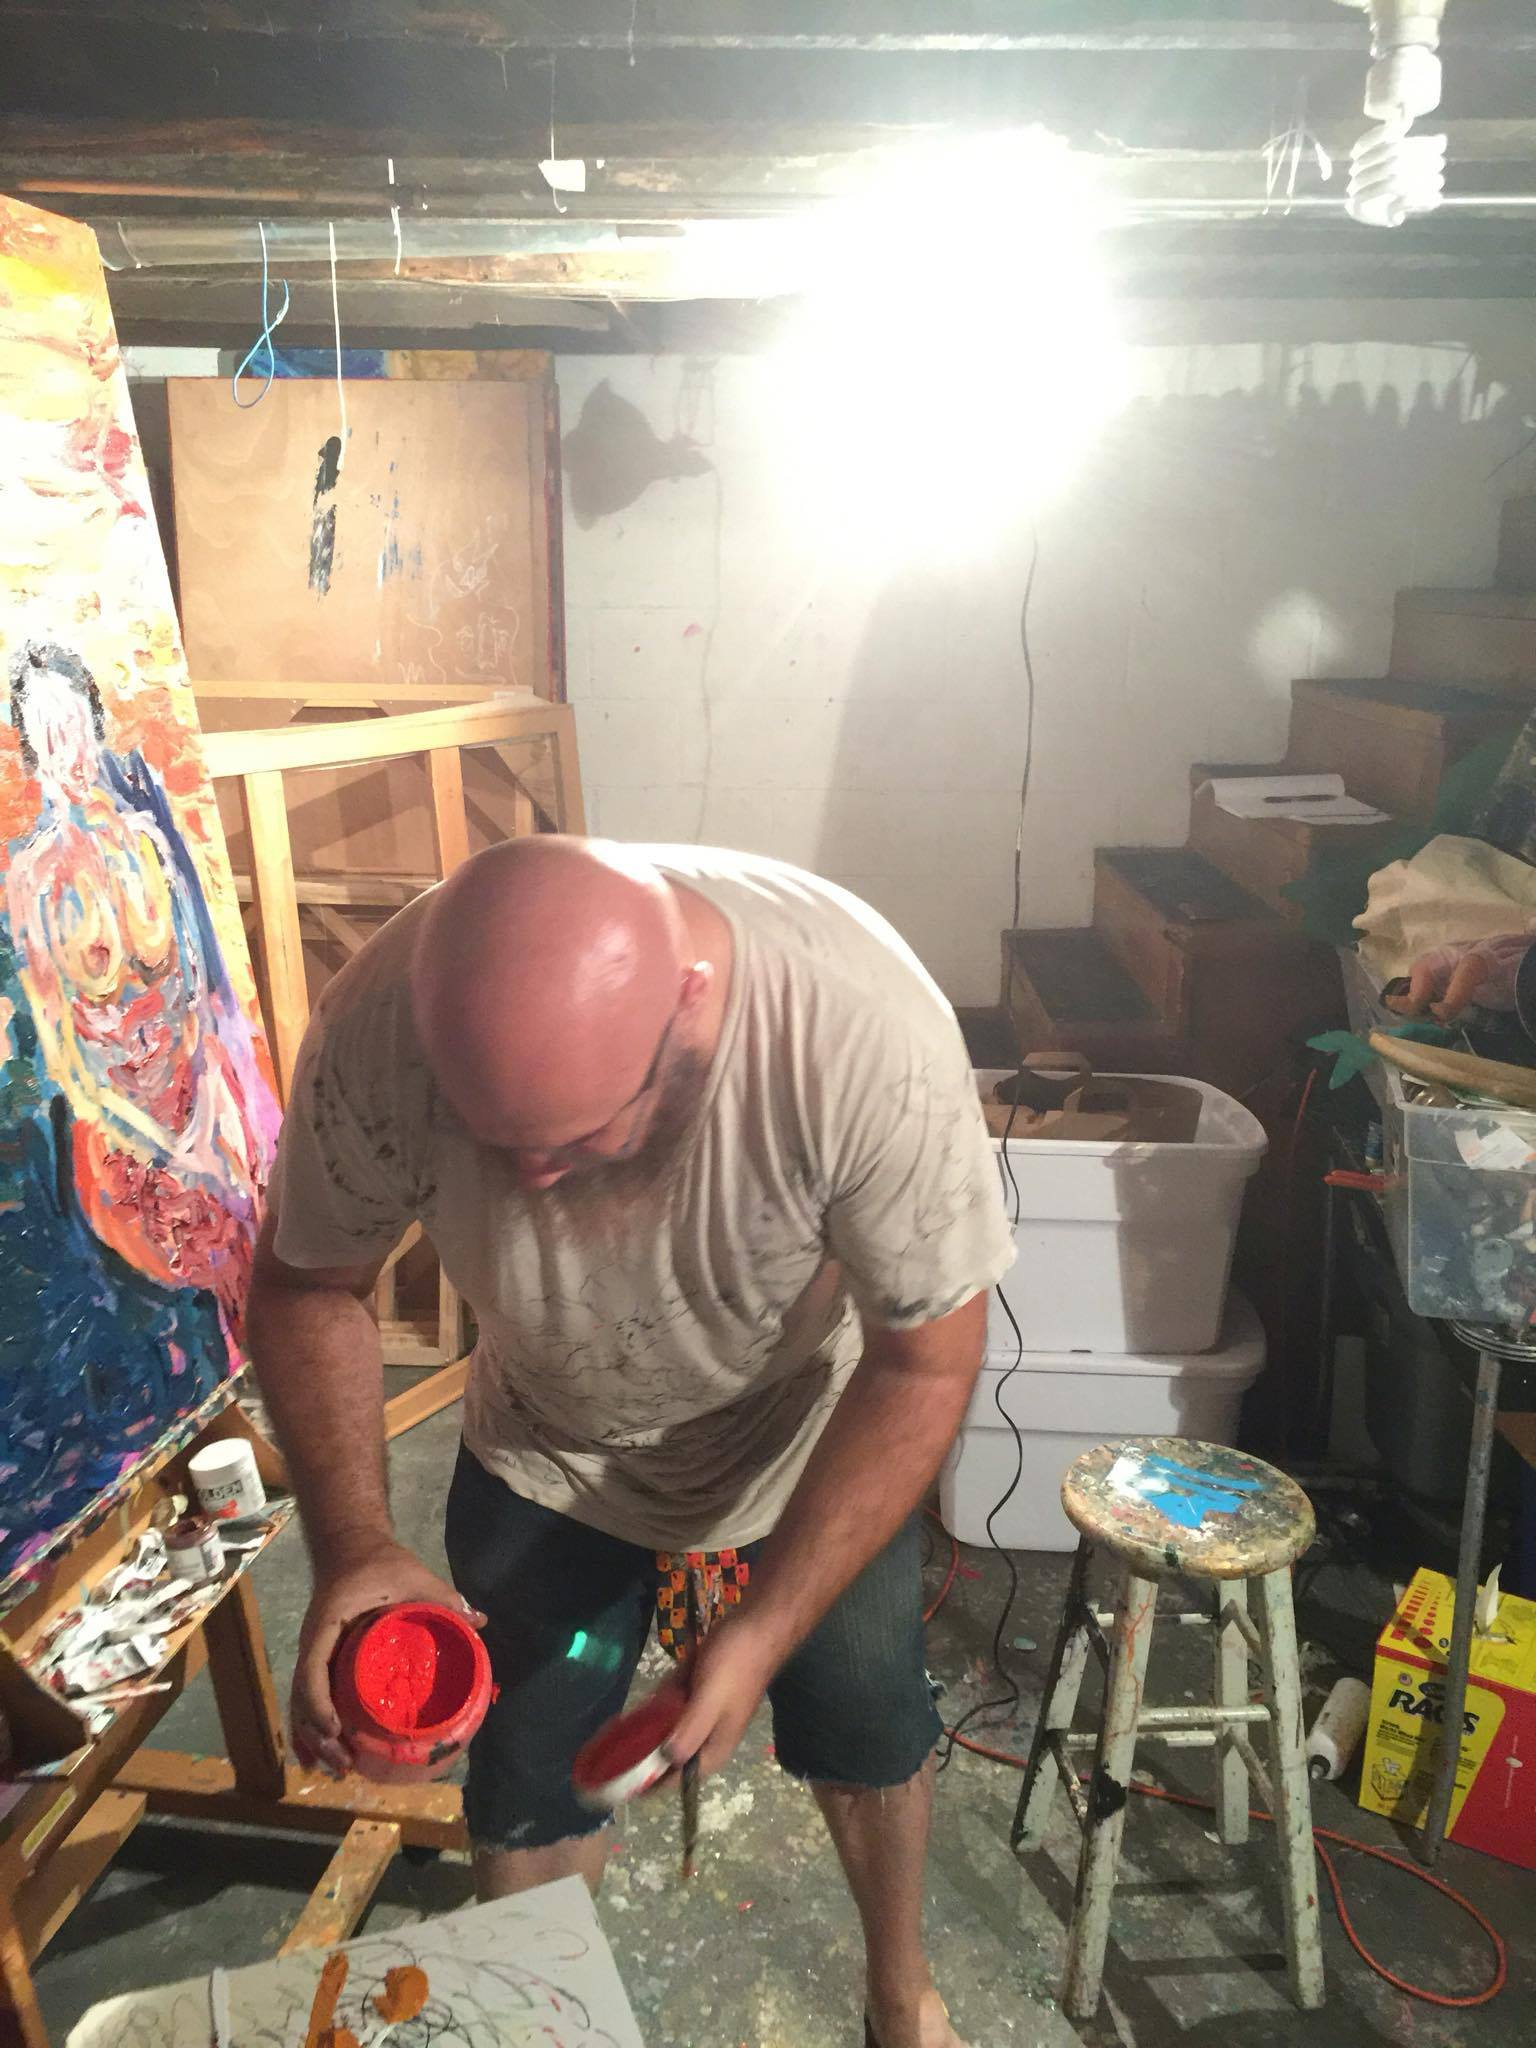 Art working being created